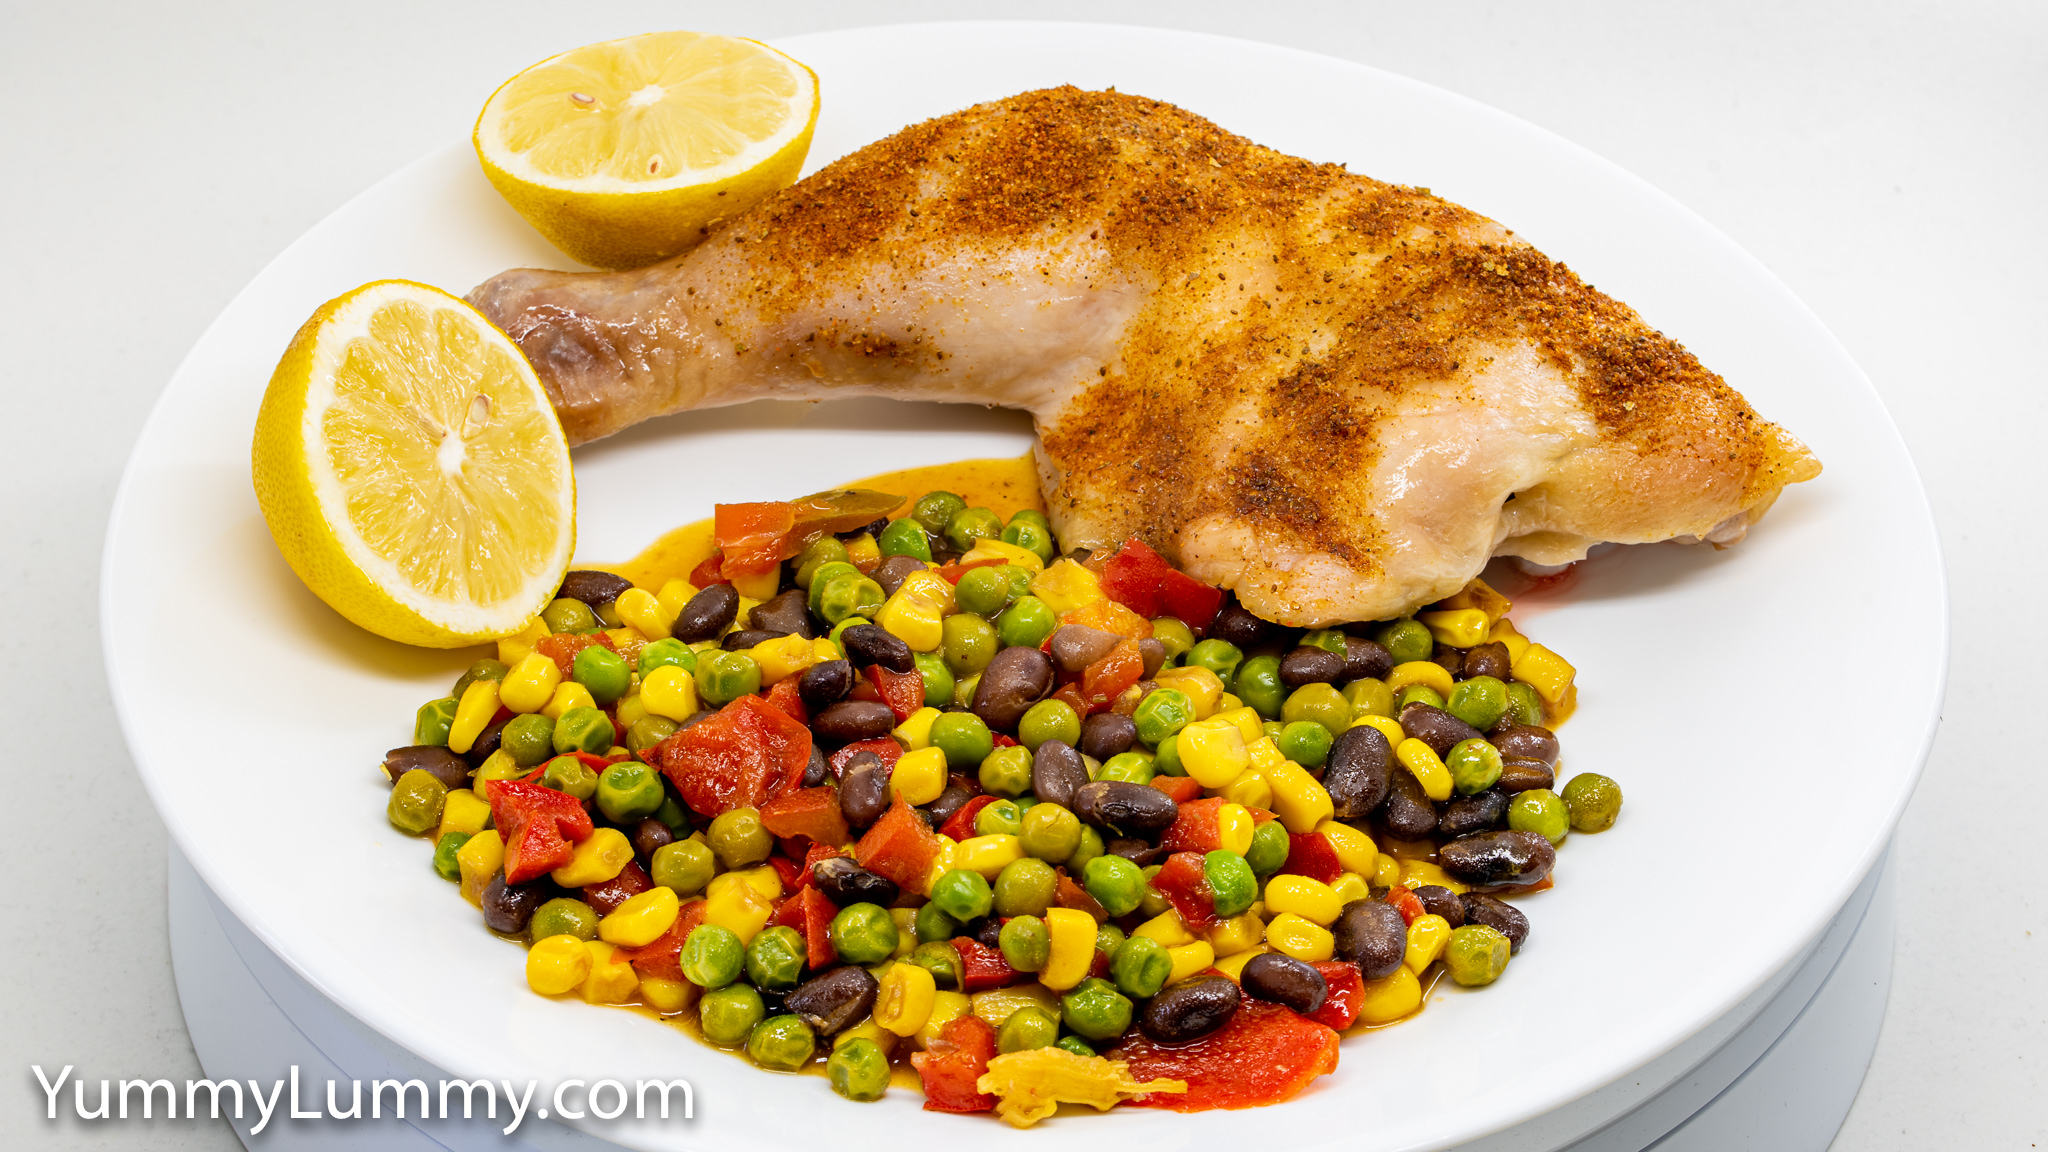 Roasted chicken thigh with frozen vegetables. Gary Lum.